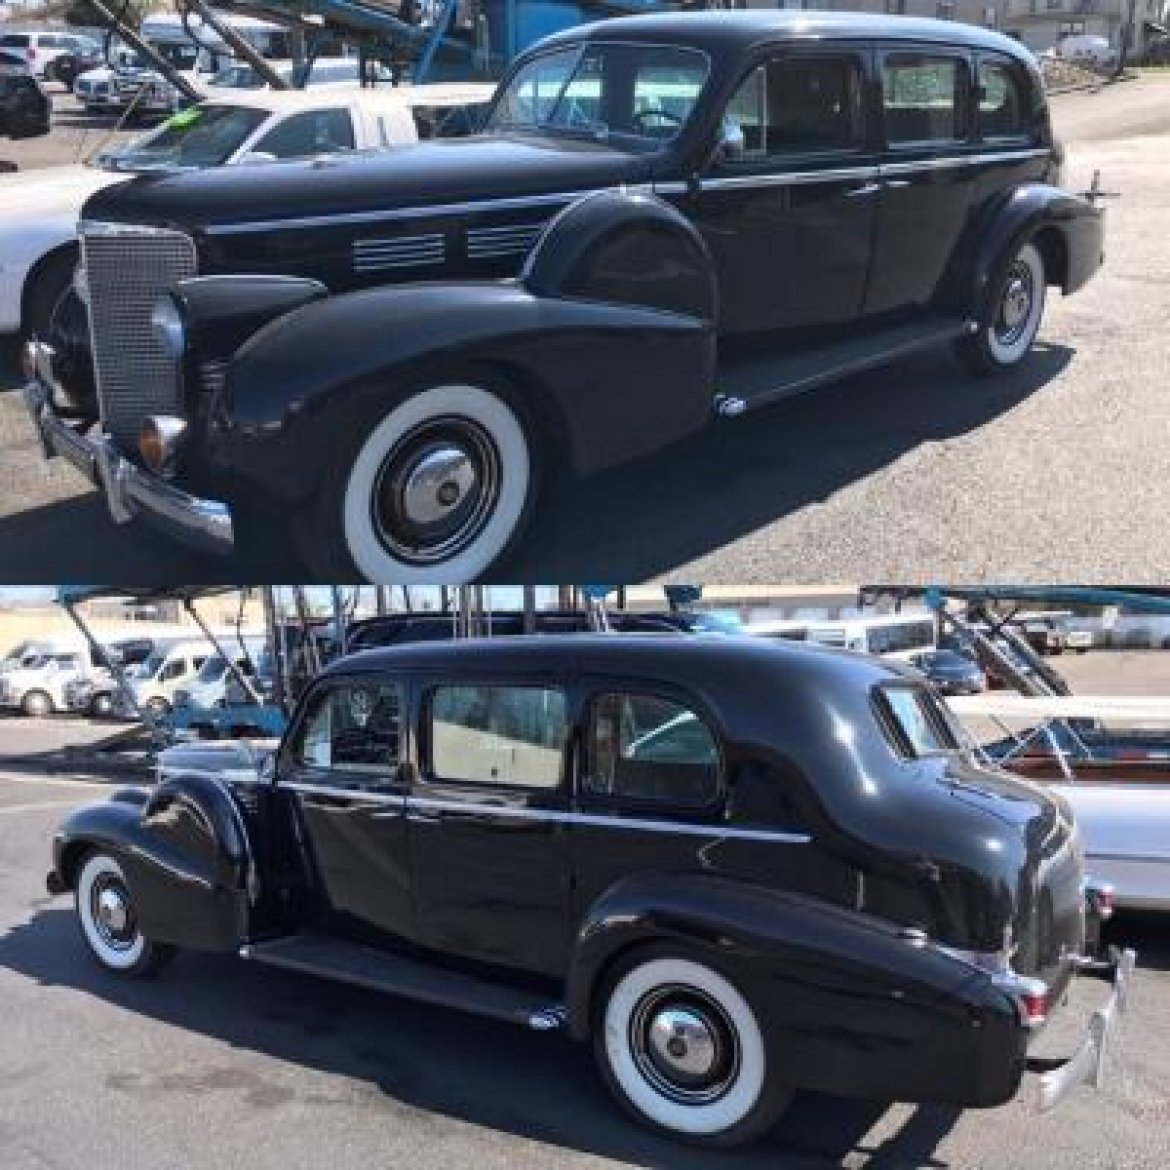 Used 1938 Cadillac Formal Limo For Sale #WS-13271